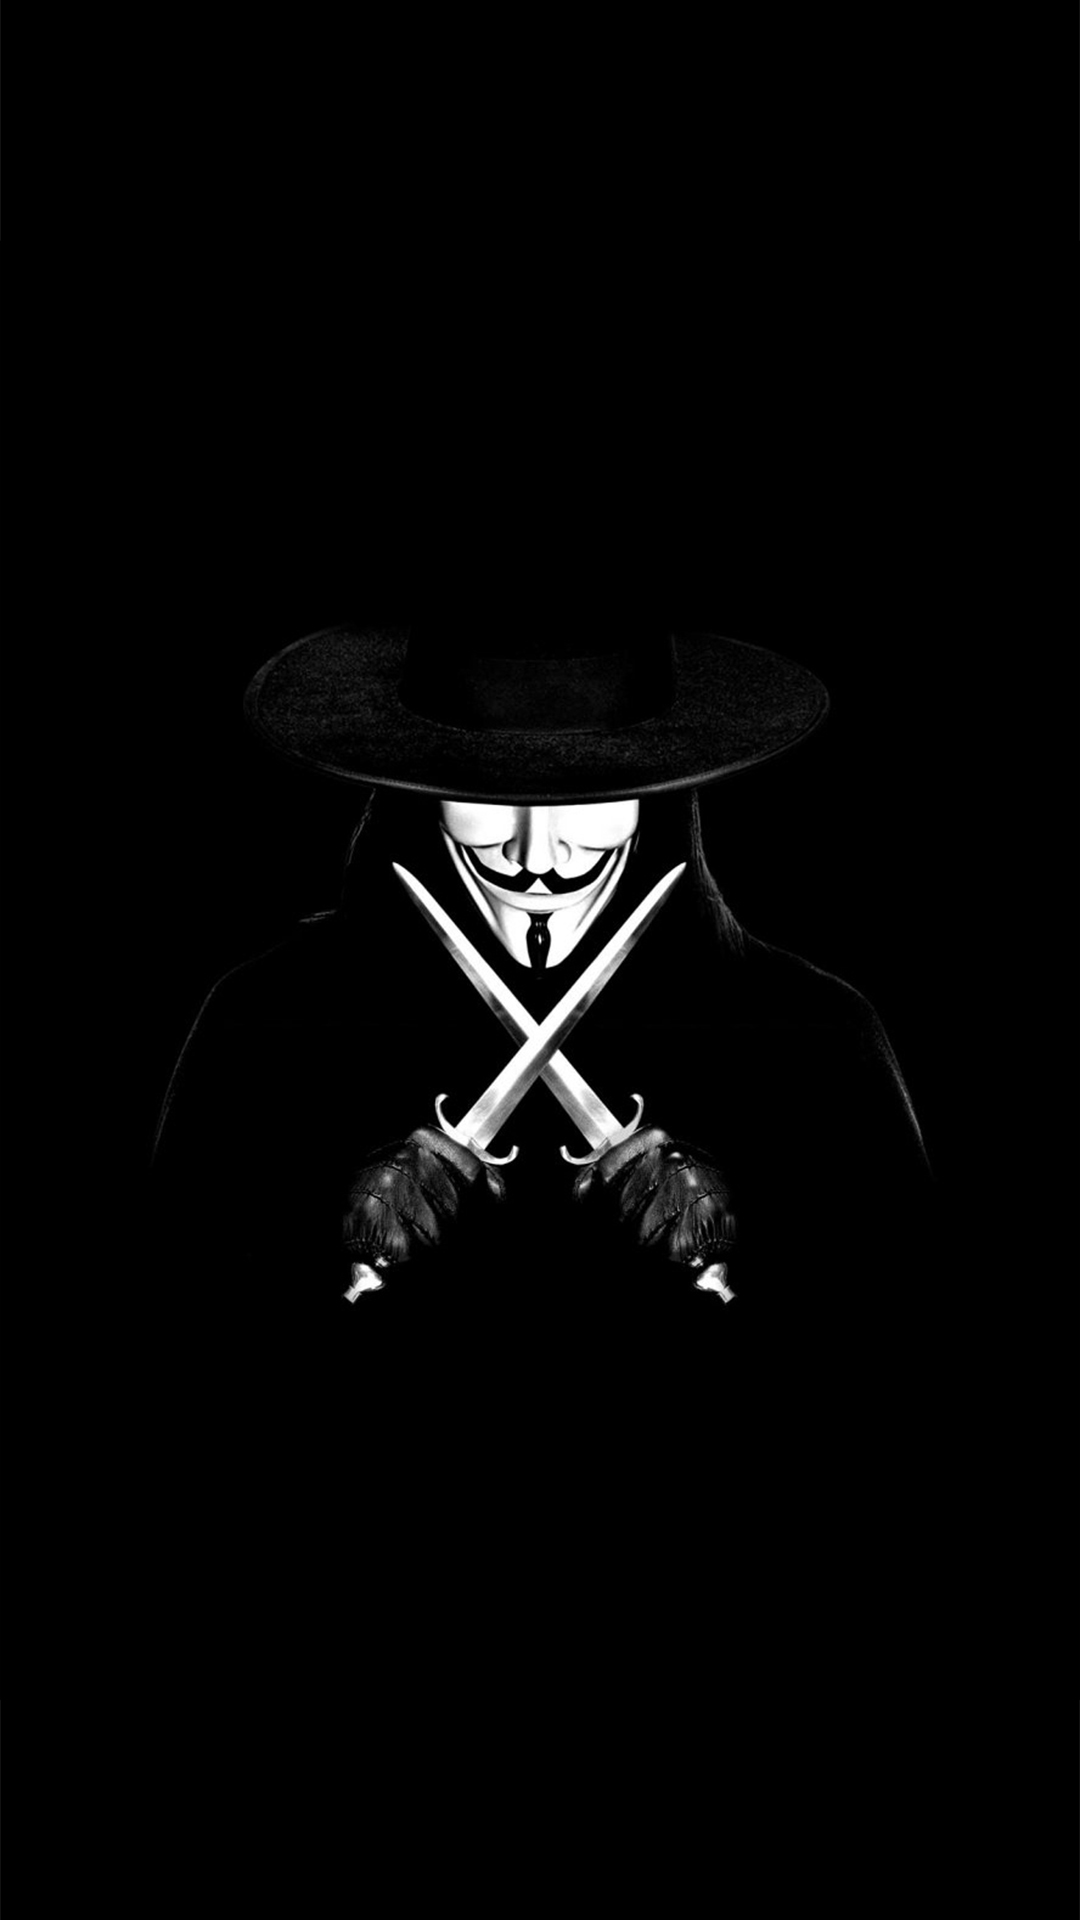 V For Vendetta Quotes Hd Wallpaper V For Vendetta Best Htc One Wallpapers Free And Easy To